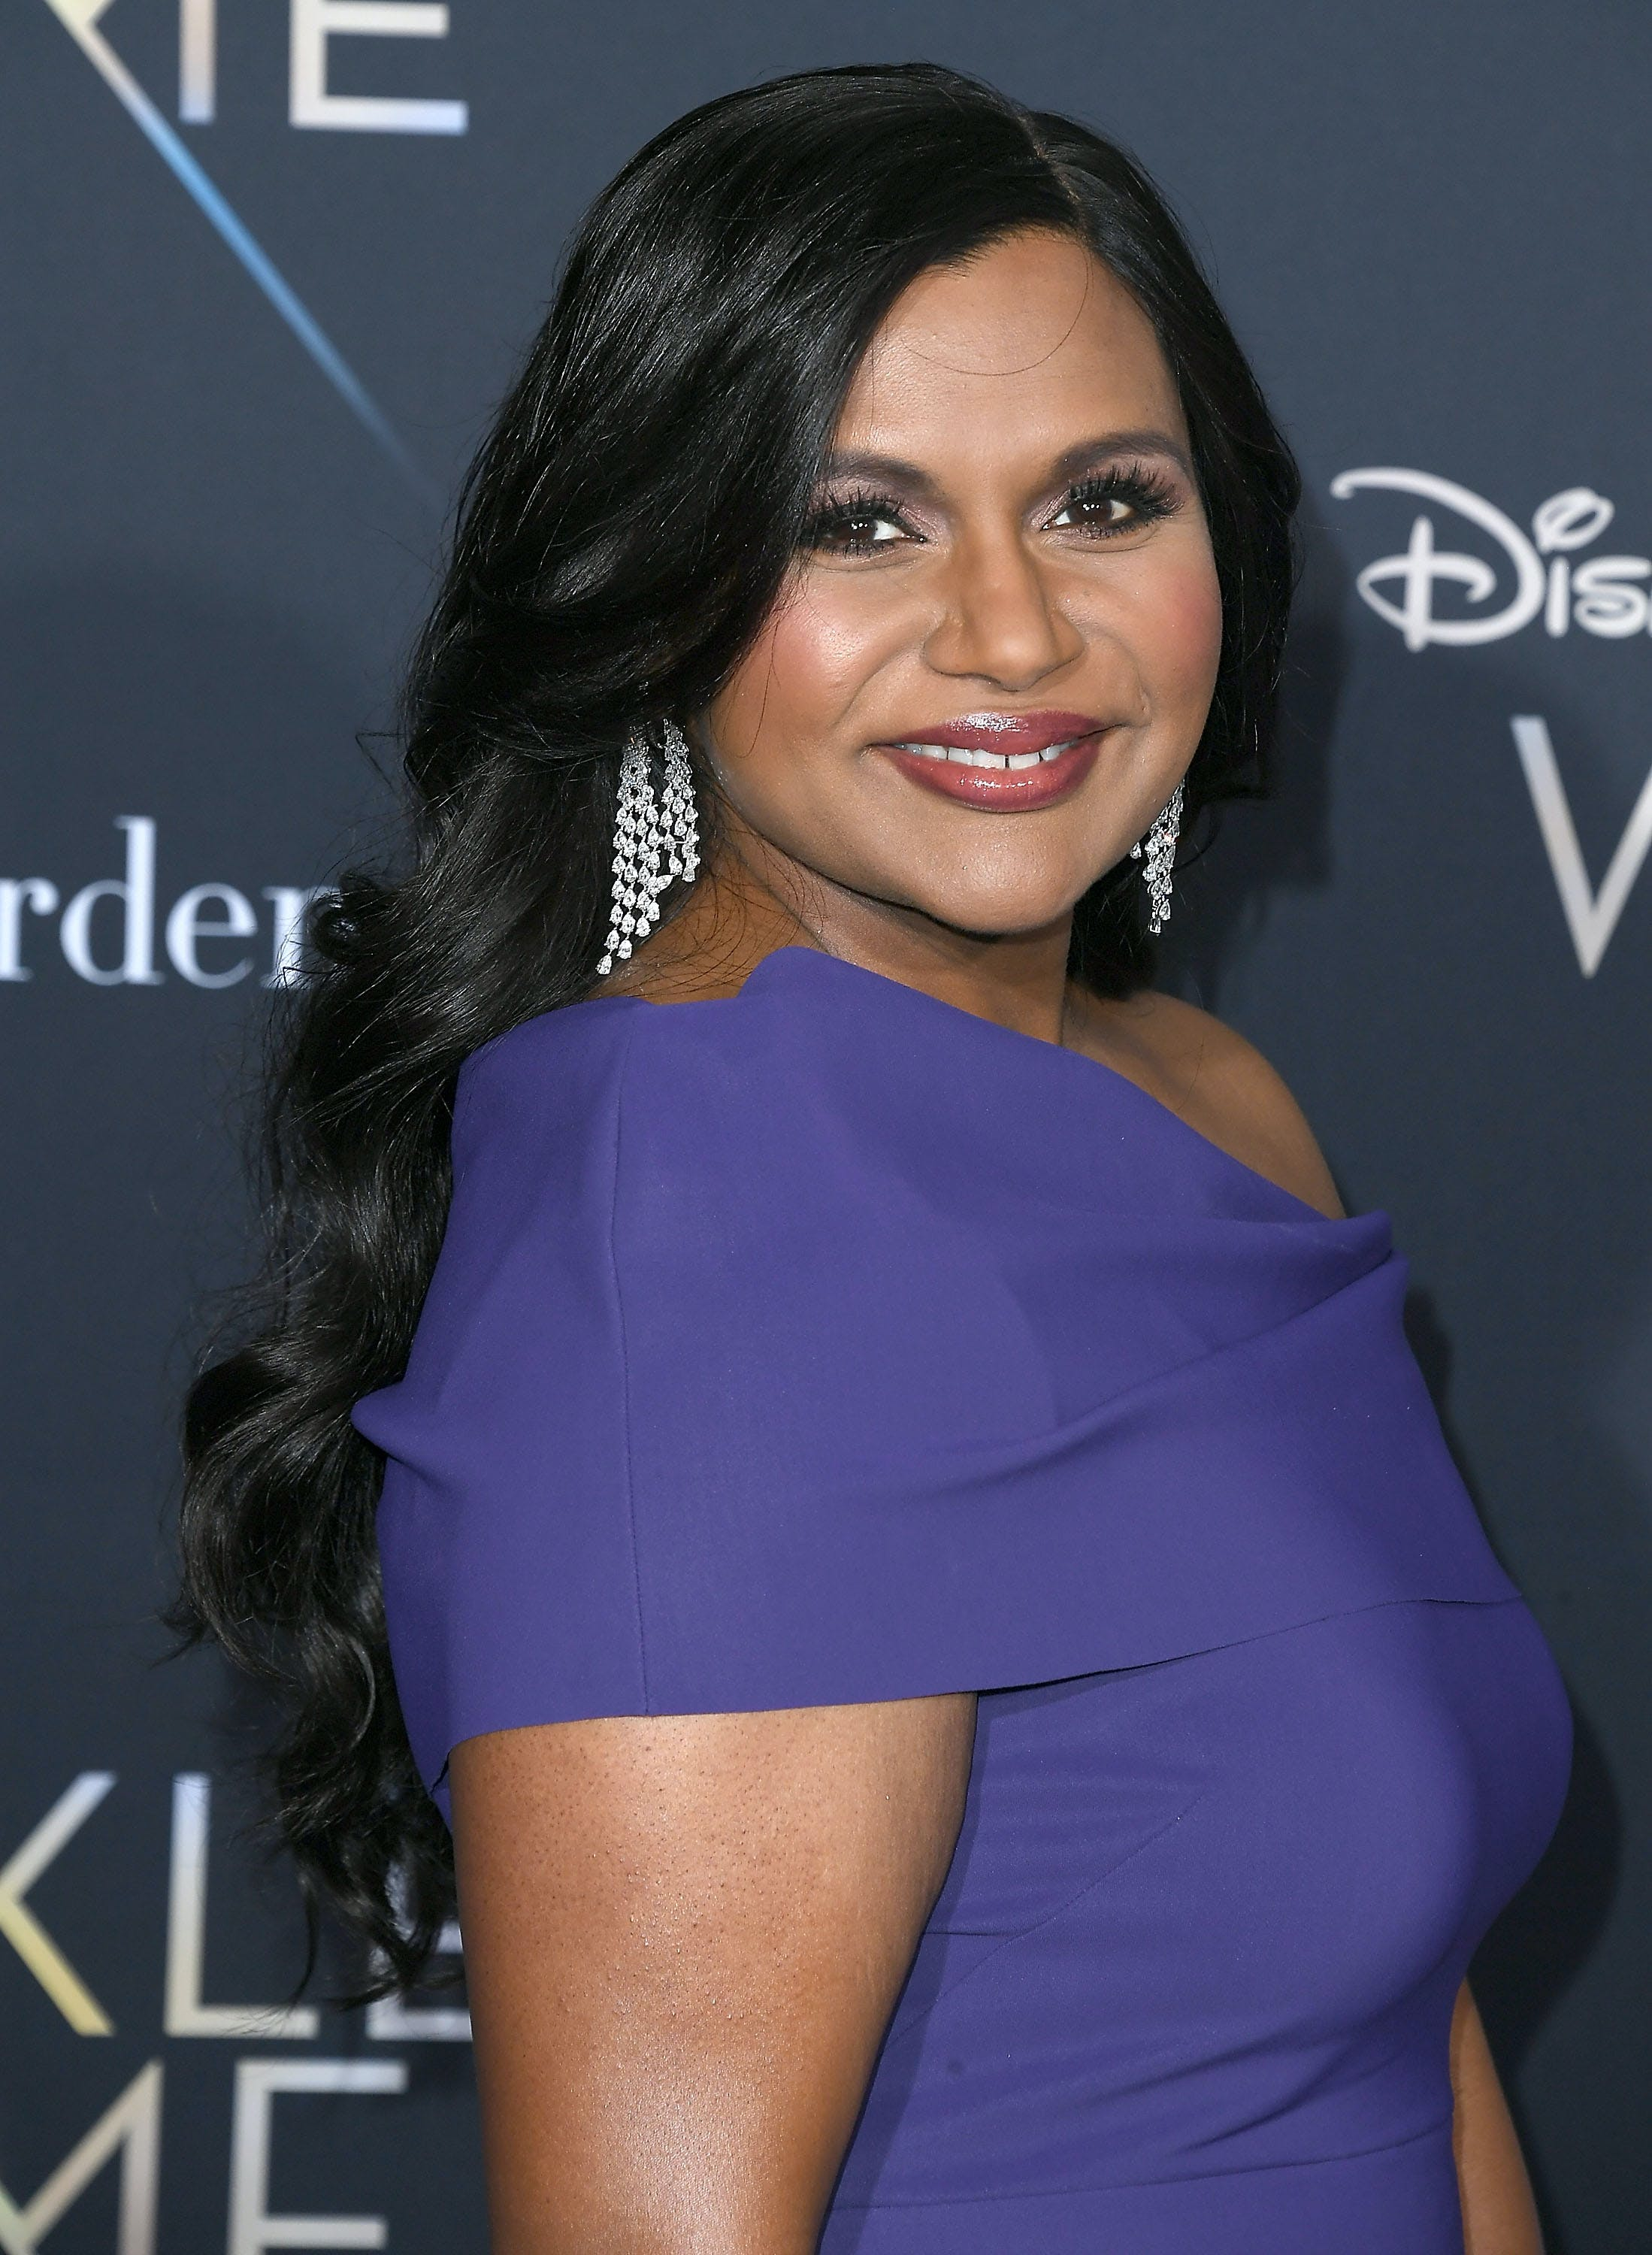 Mindy Kaling at the premier of A Wrinkle In Time